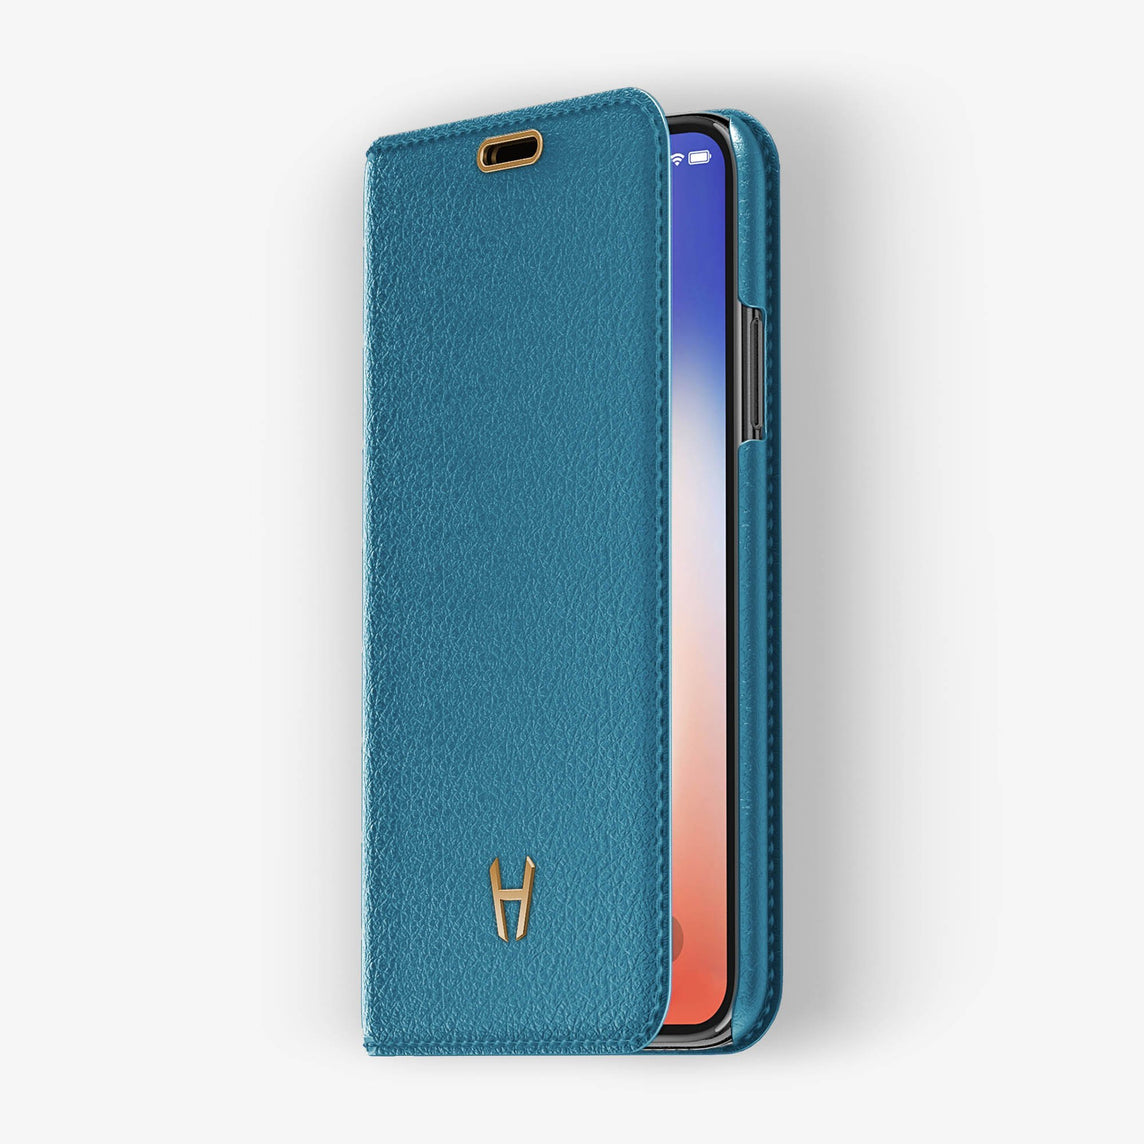 Peony Blue Calfskin iPhone Folio Case for iPhone X finishing rose gold - Hadoro Luxury Cases img2